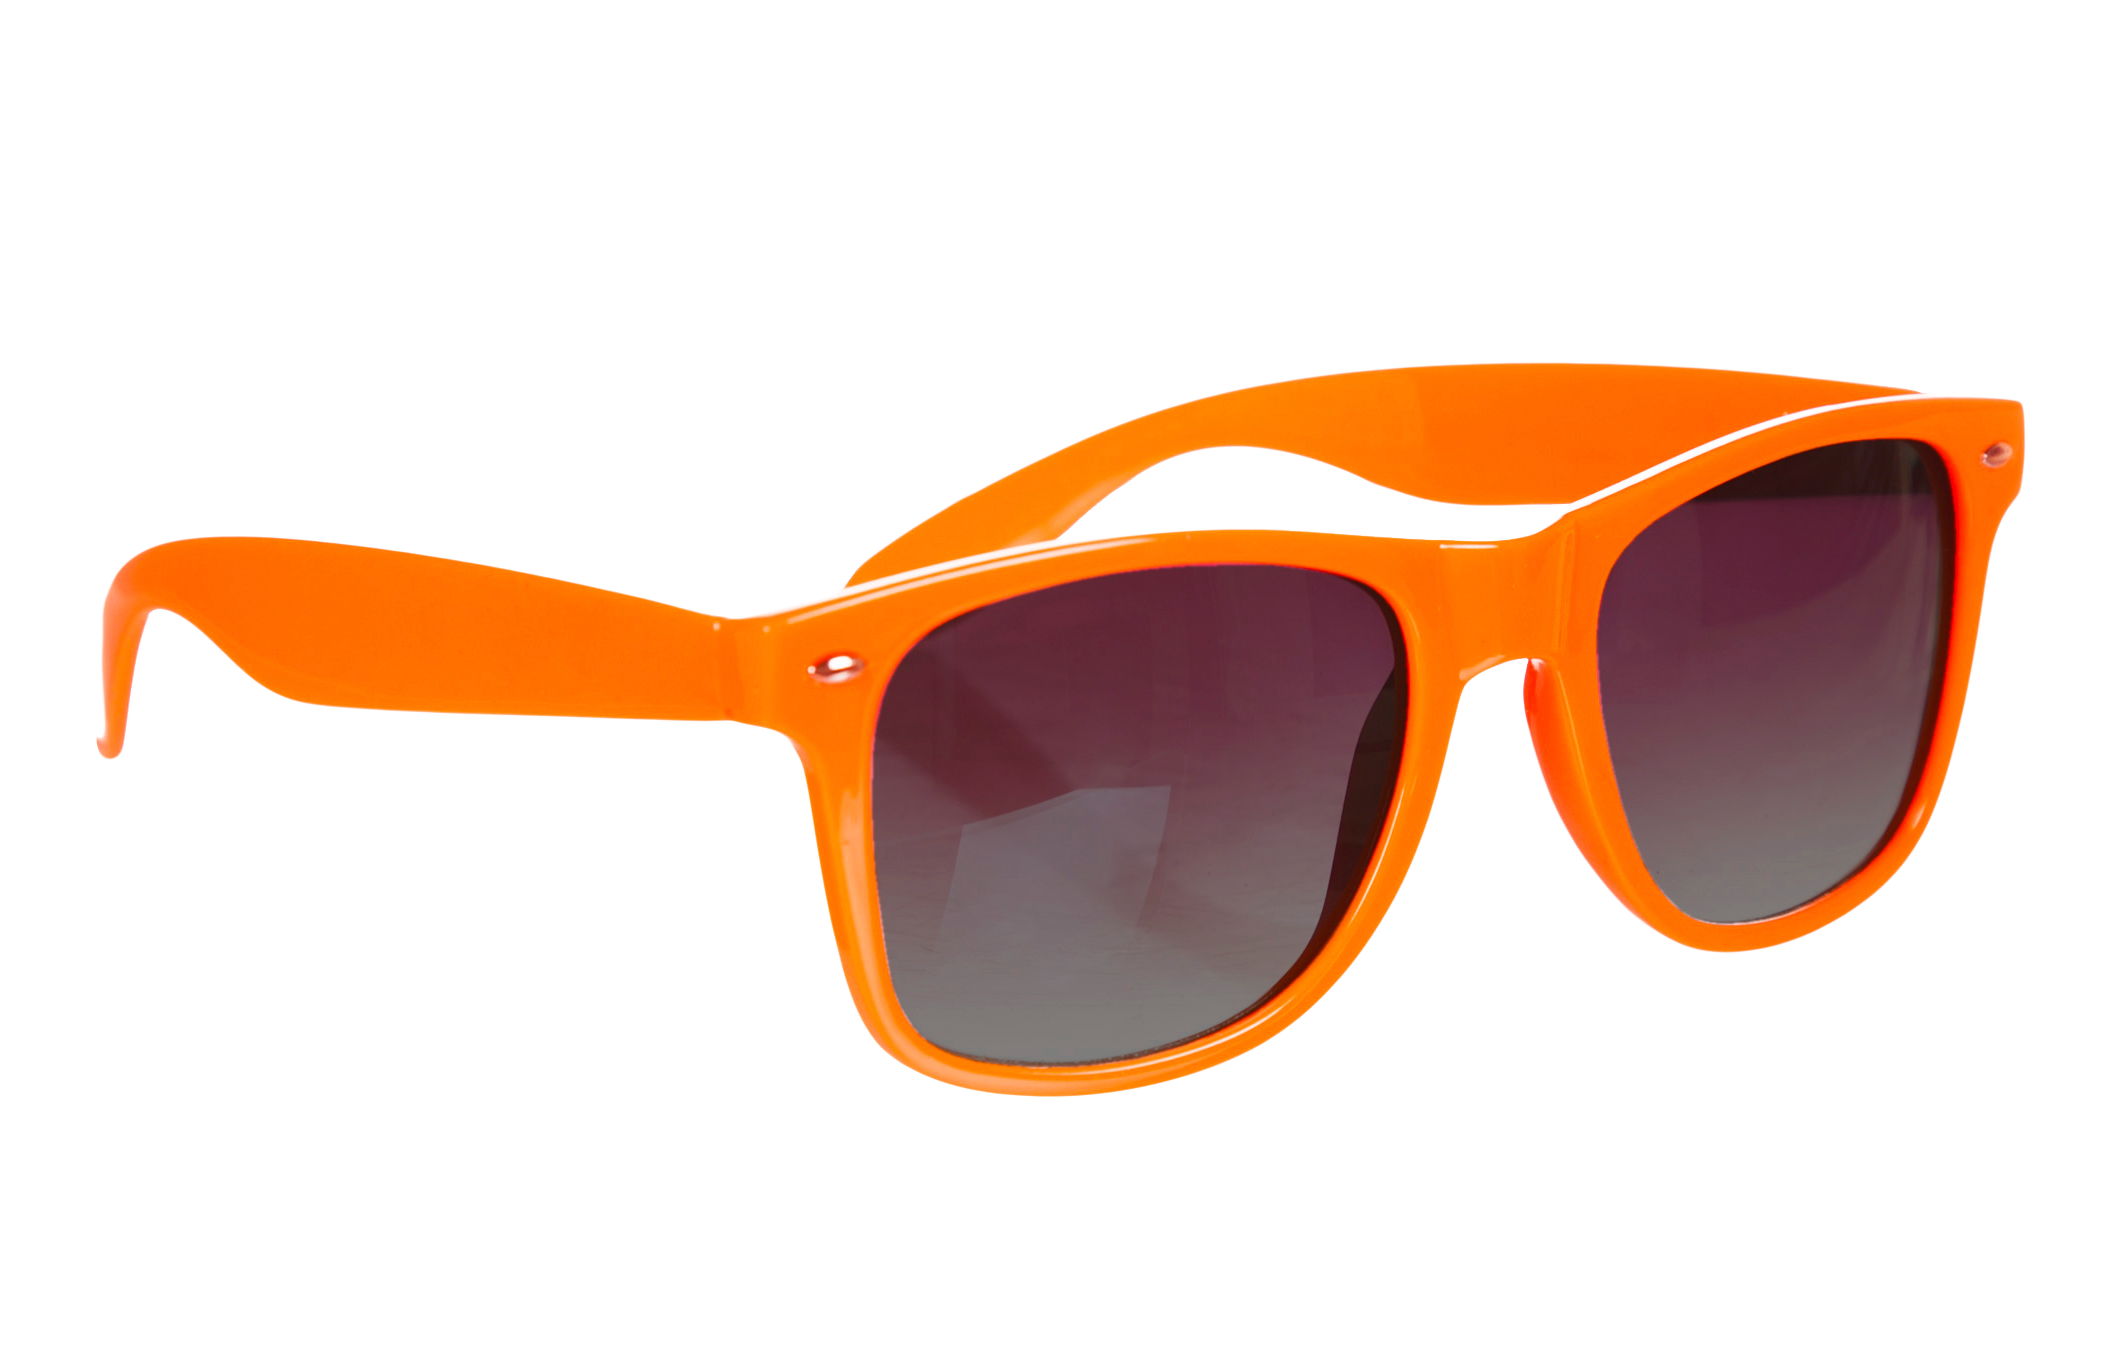 Sunglass PNG Transparent Image - Sunglasses PNG - Sunglasses HD PNG